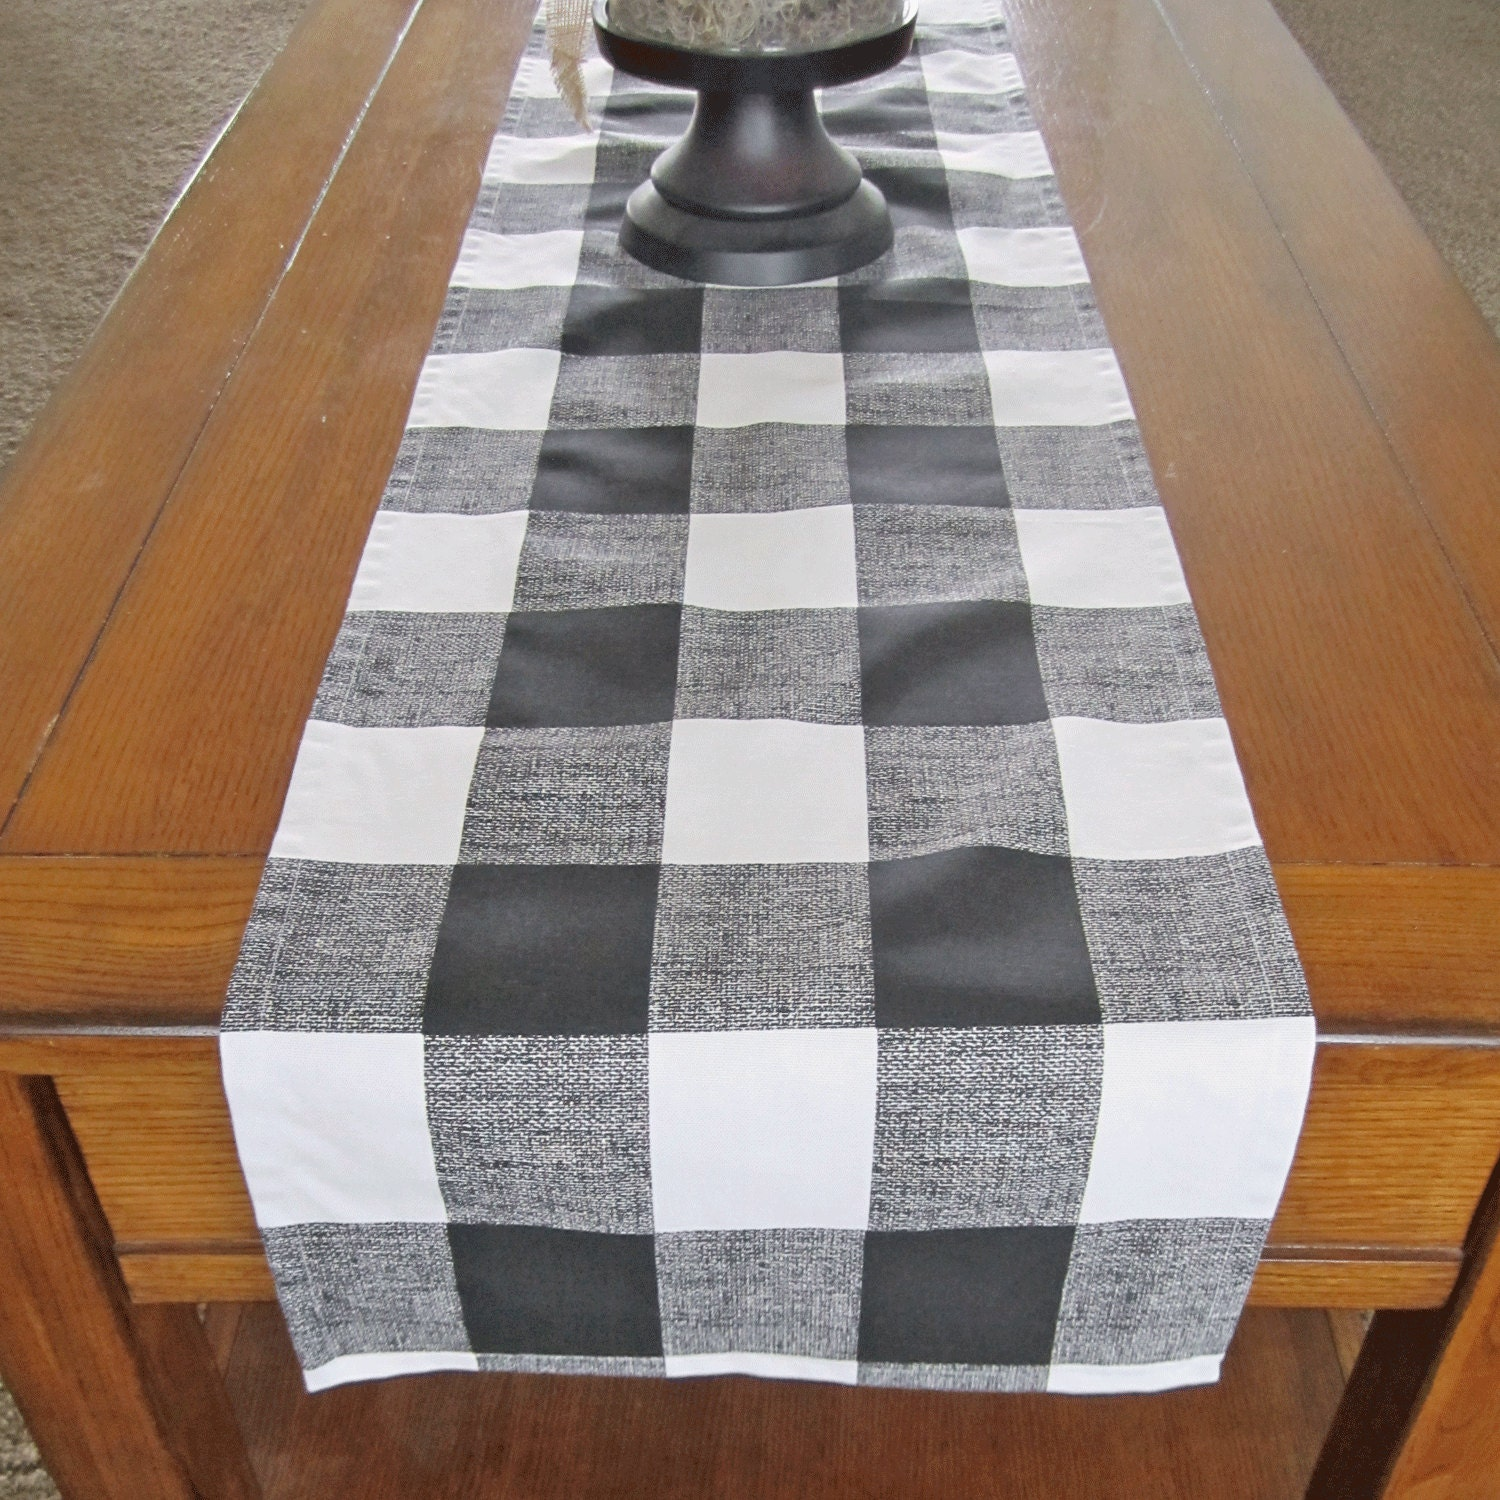 Black table runners can improve the aesthetic of a dining room table with next to no effort or cost. With options for every occasion, whether that is an elegant evening of fine dining or a wholesome Sunday night roast with the whole family, you're bound to find a table runner for your home within Wayfair.